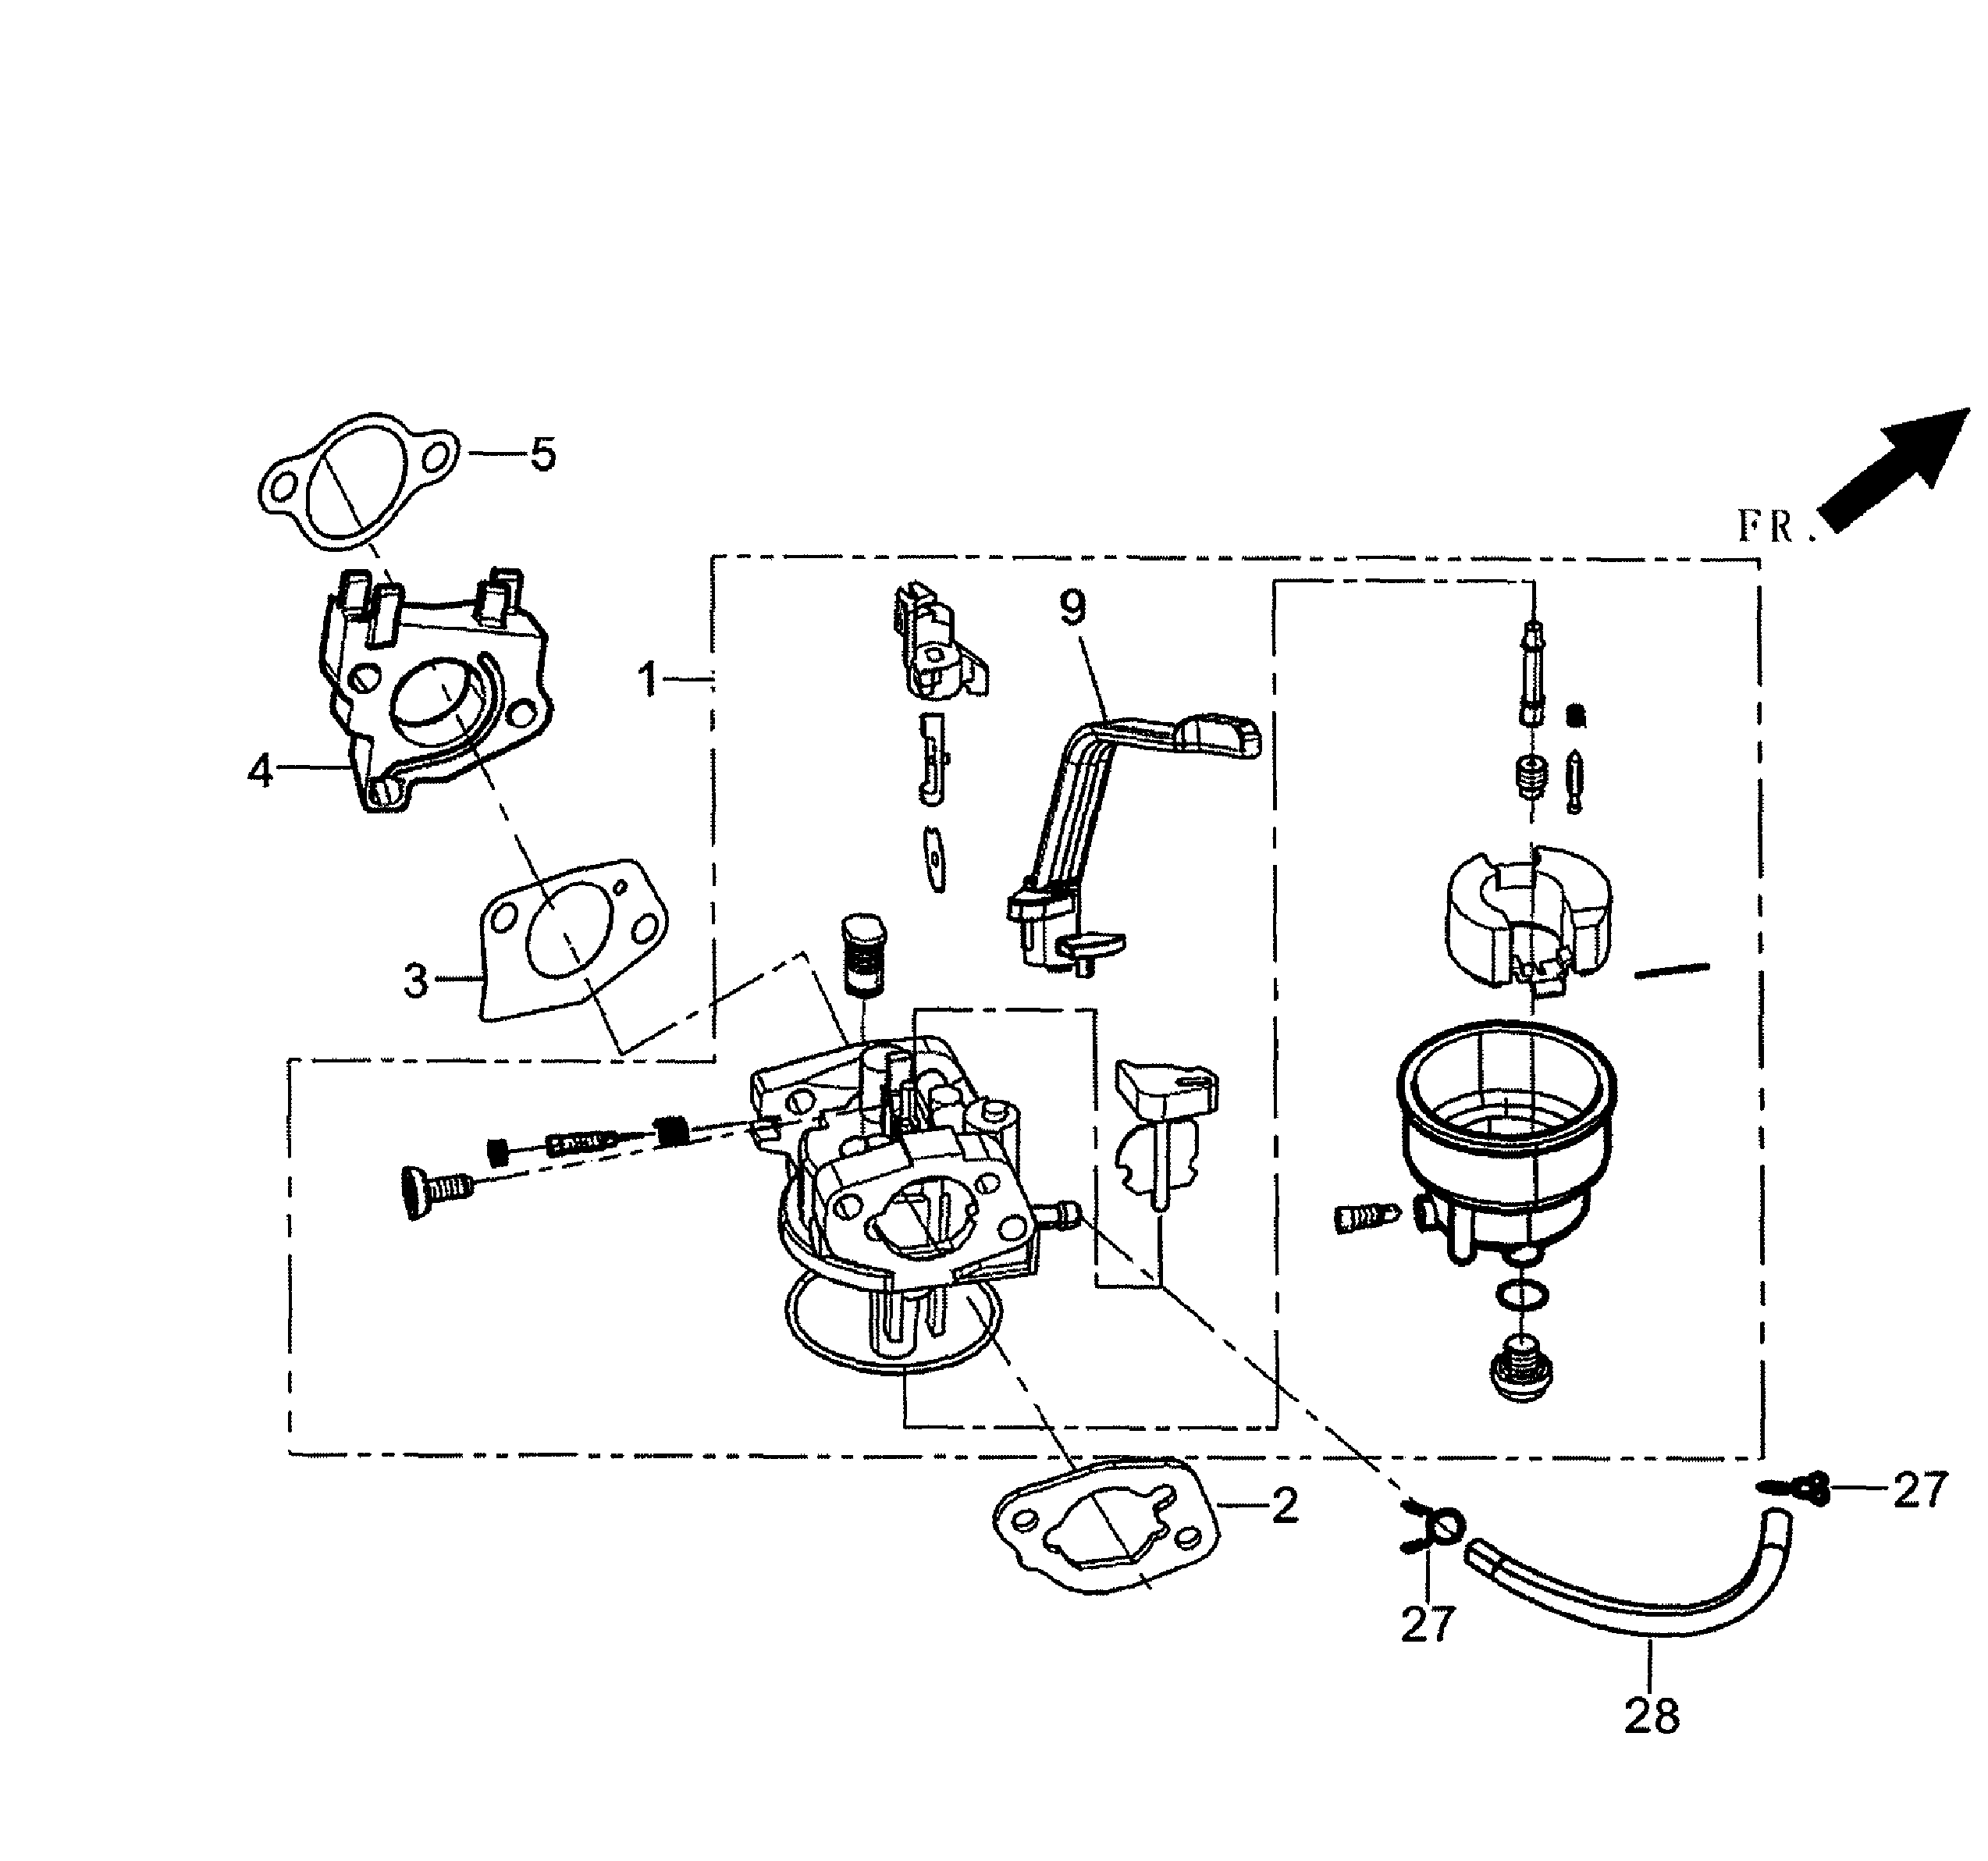 4g91 carburetor wiring diagram 2001 pontiac grand prix radio craftsman teseh imageresizertool com